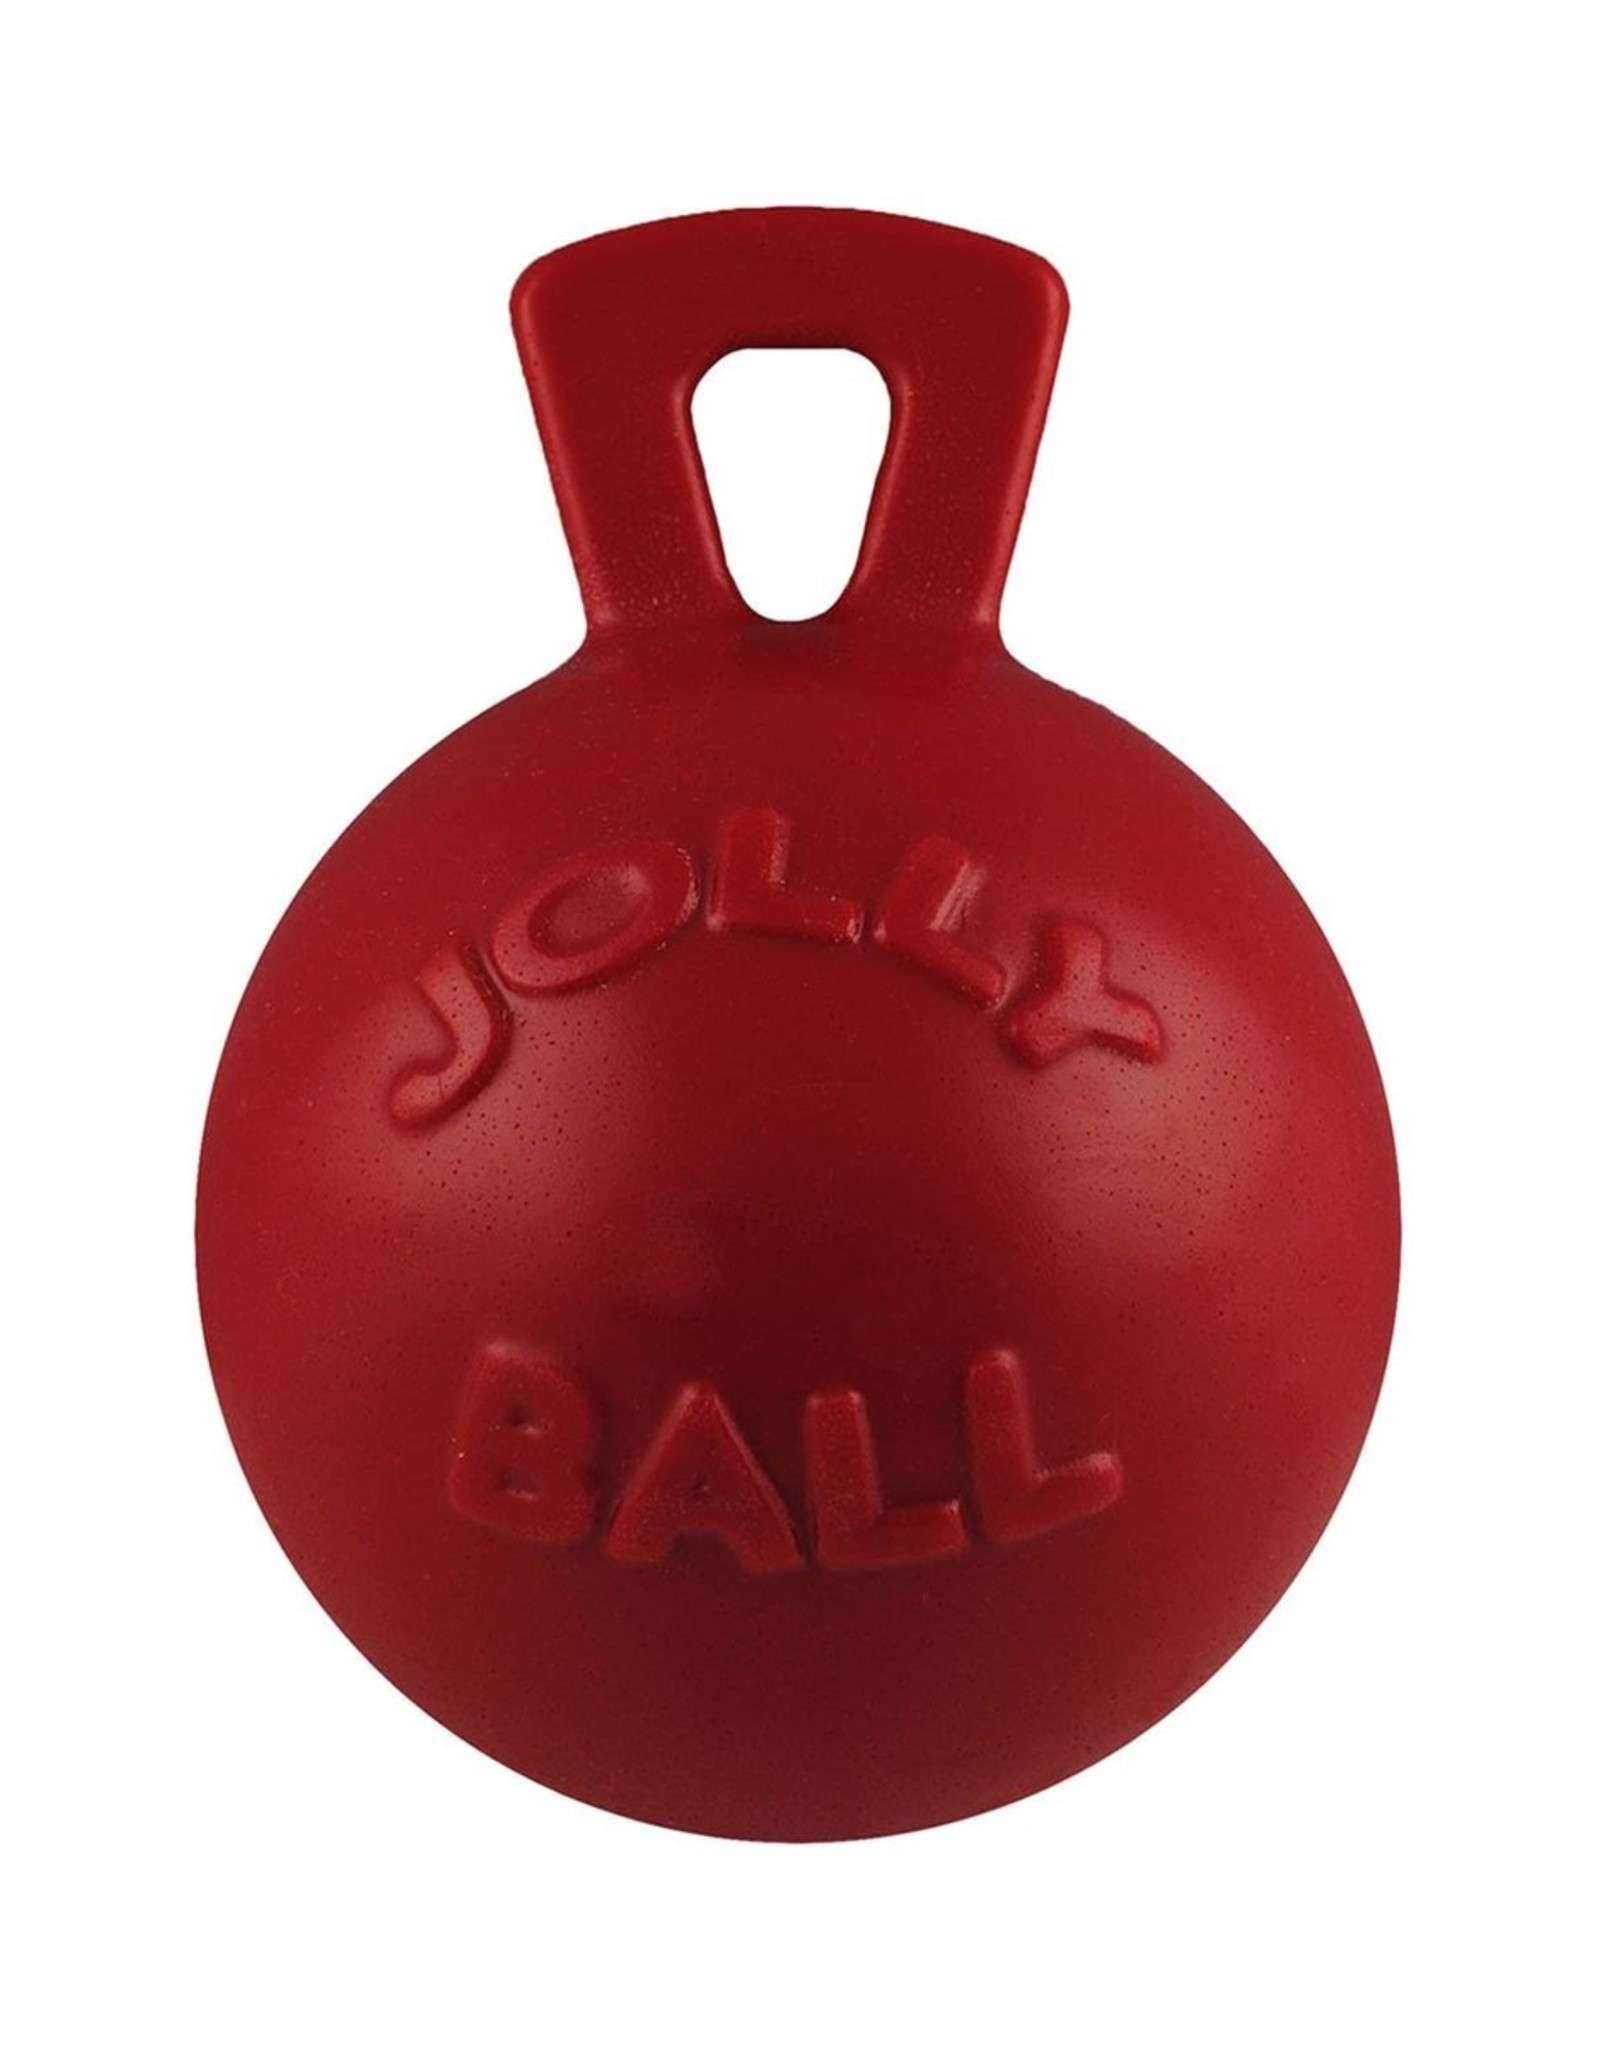 JOLLY PETS BALL JOLLY HORSE RED 10IN